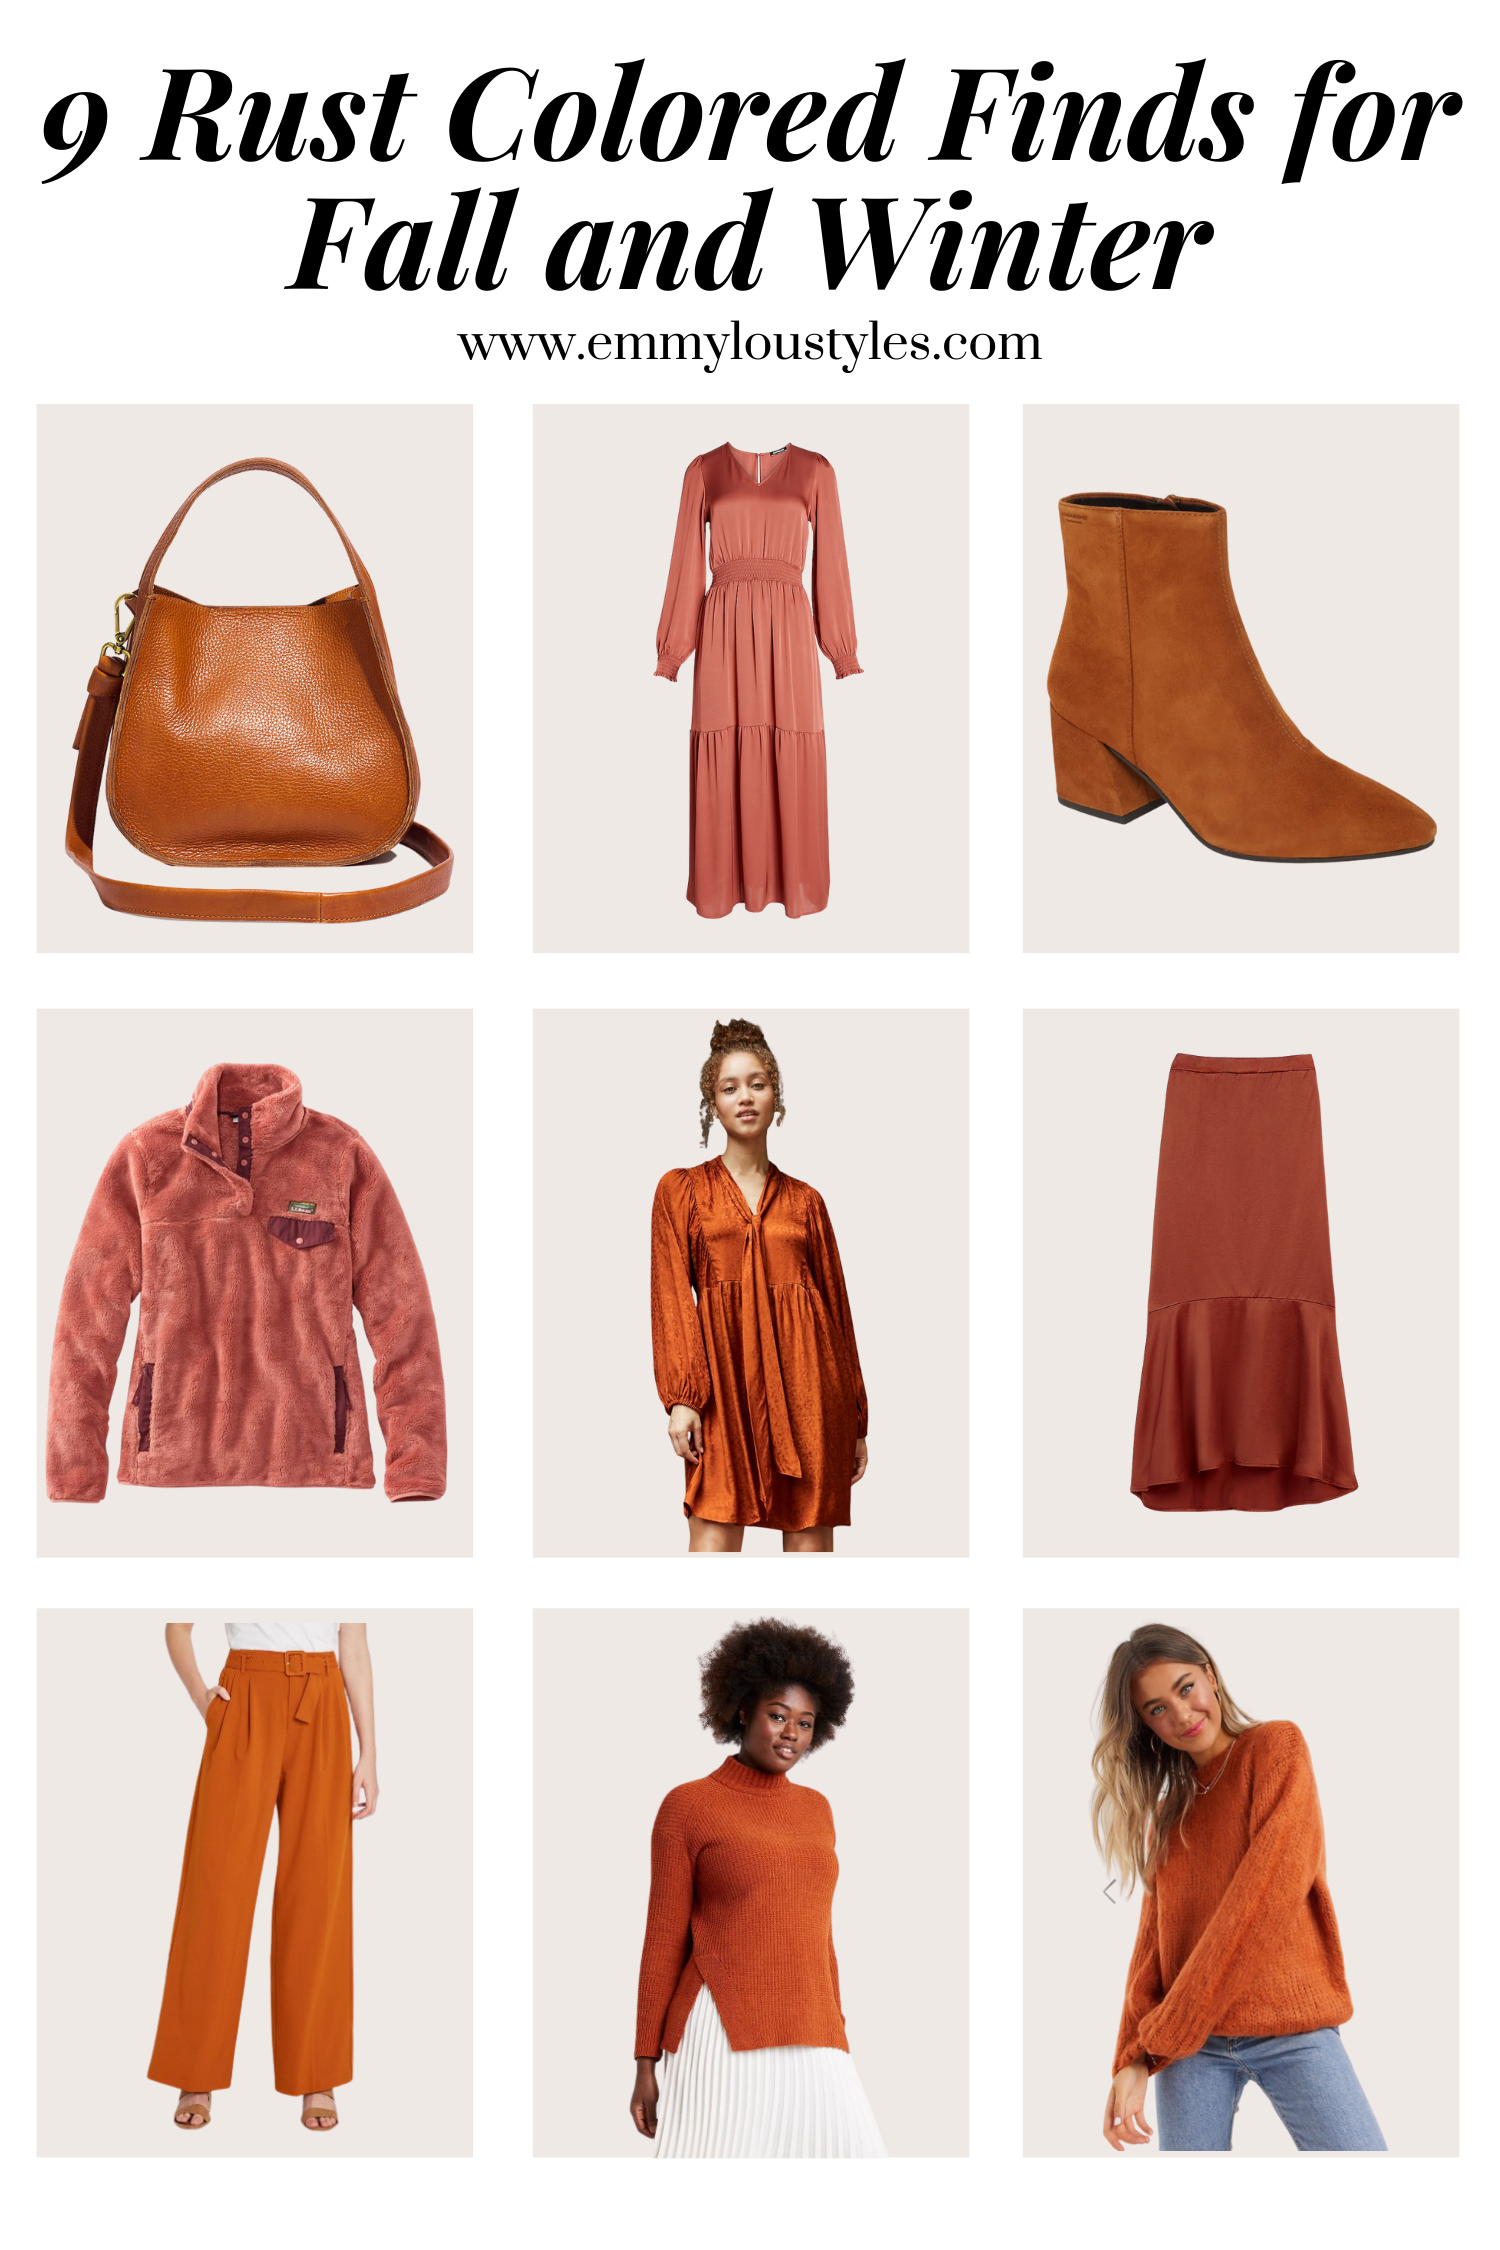 rust colored finds for fall and winter